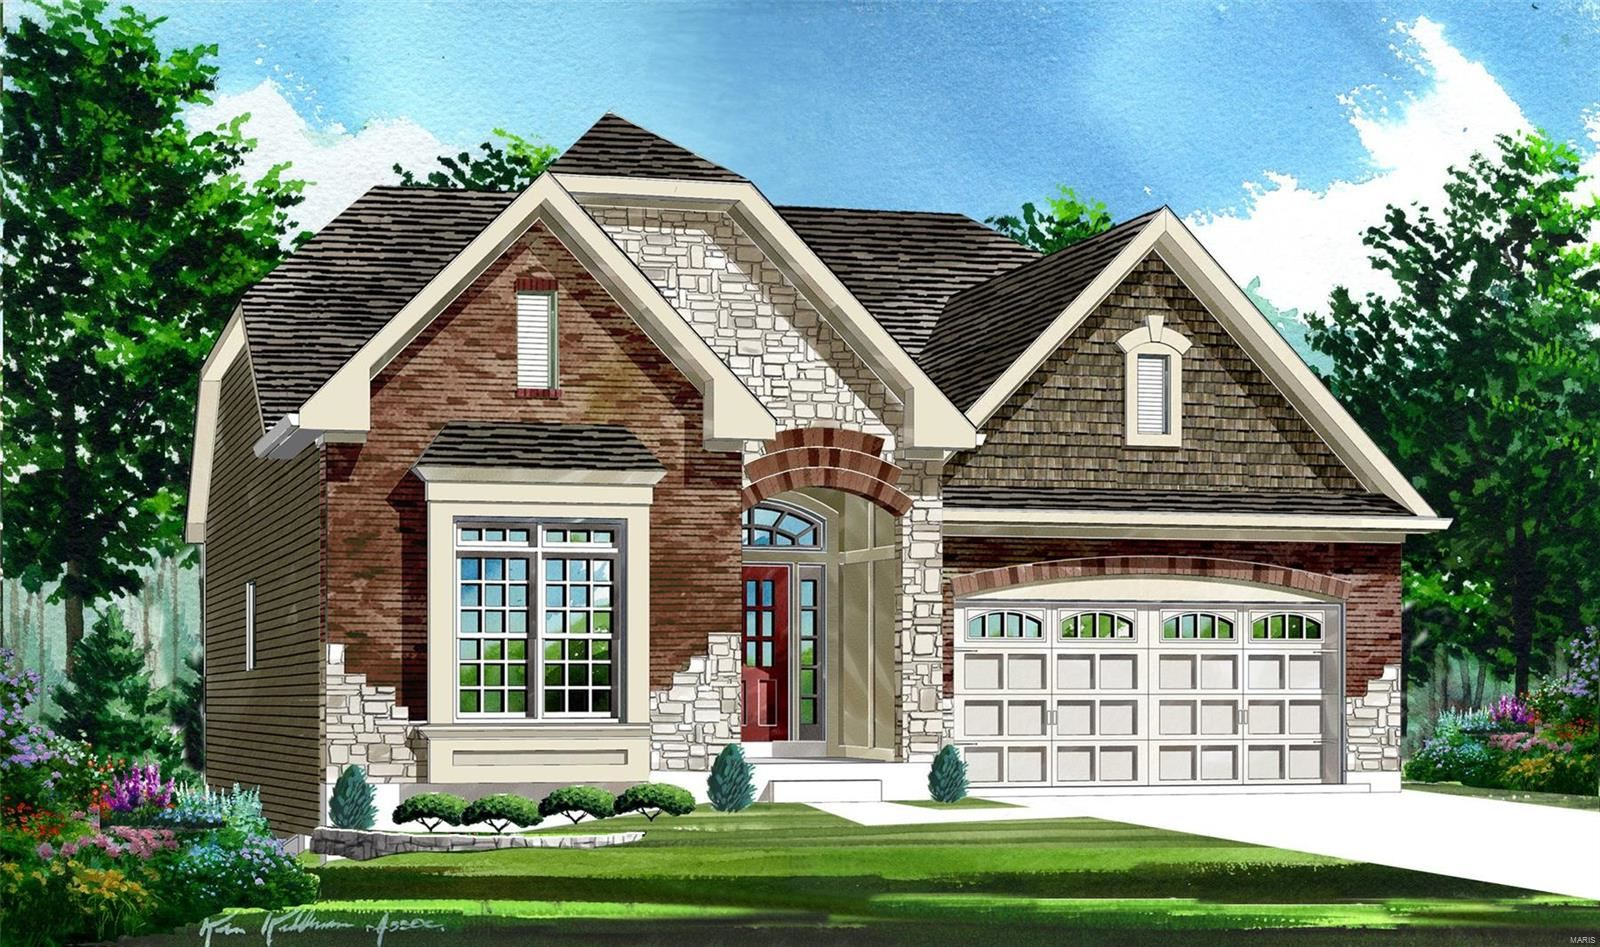 913 Grand Reserve (Lot 19) #Cabernet, Chesterfield, MO 63017 - MLS#: 21002665